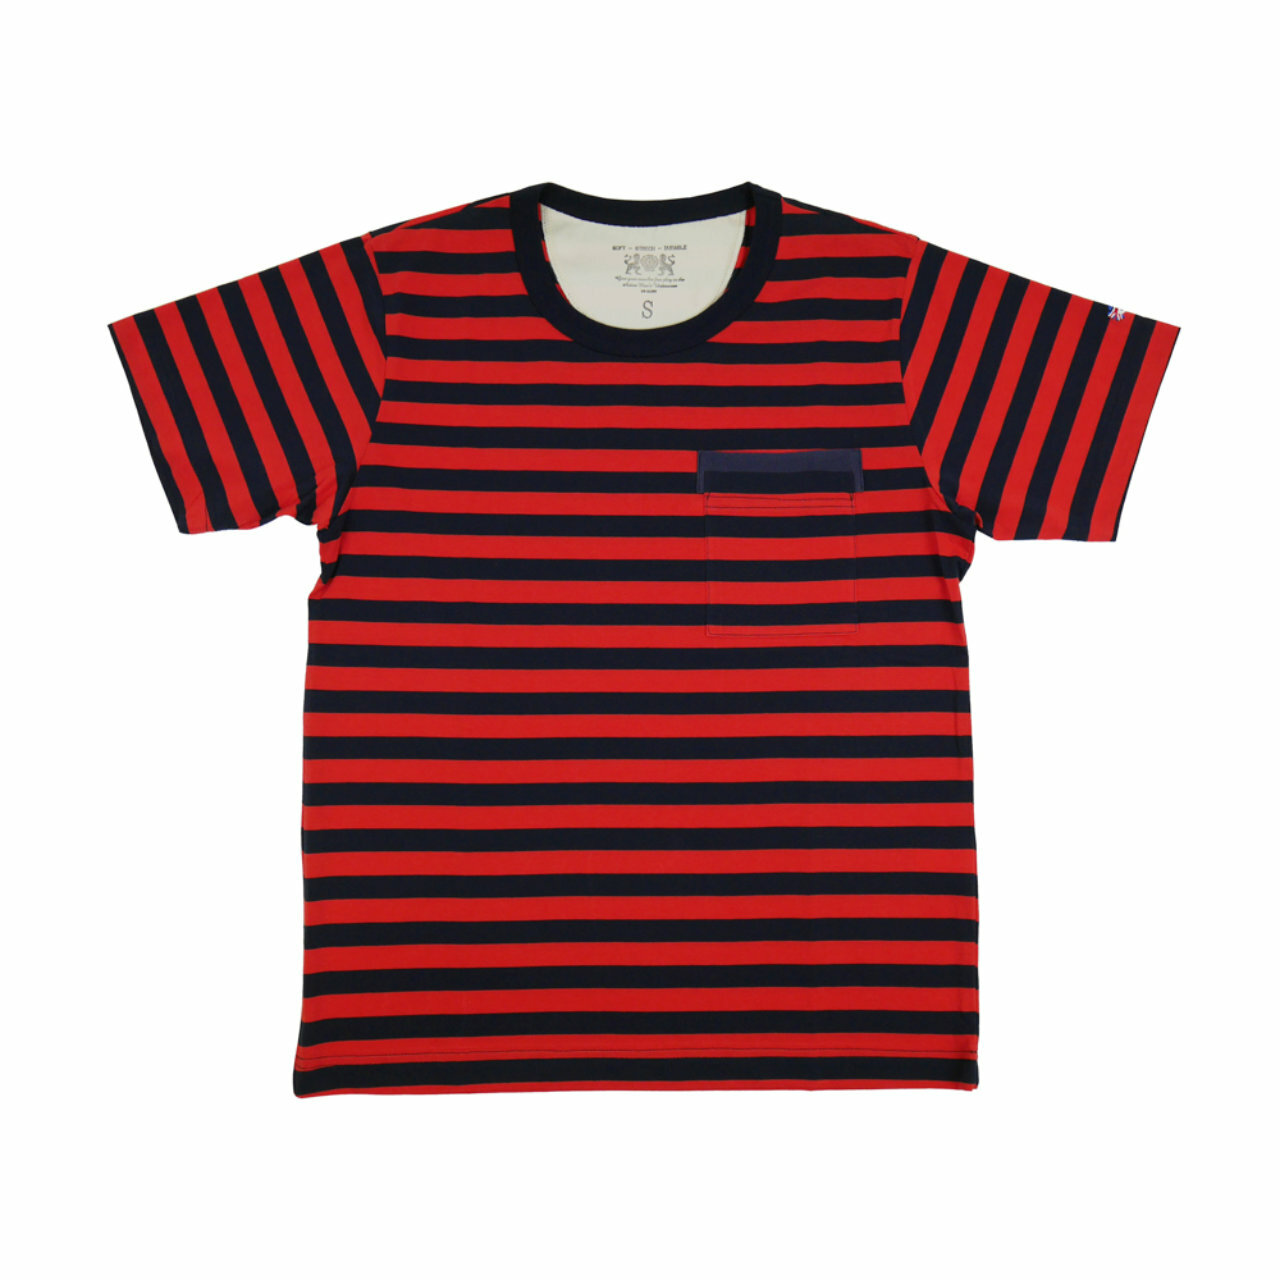 【OR GLORY】 ボーダー ポケット Tシャツ 〈Red × Navy〉